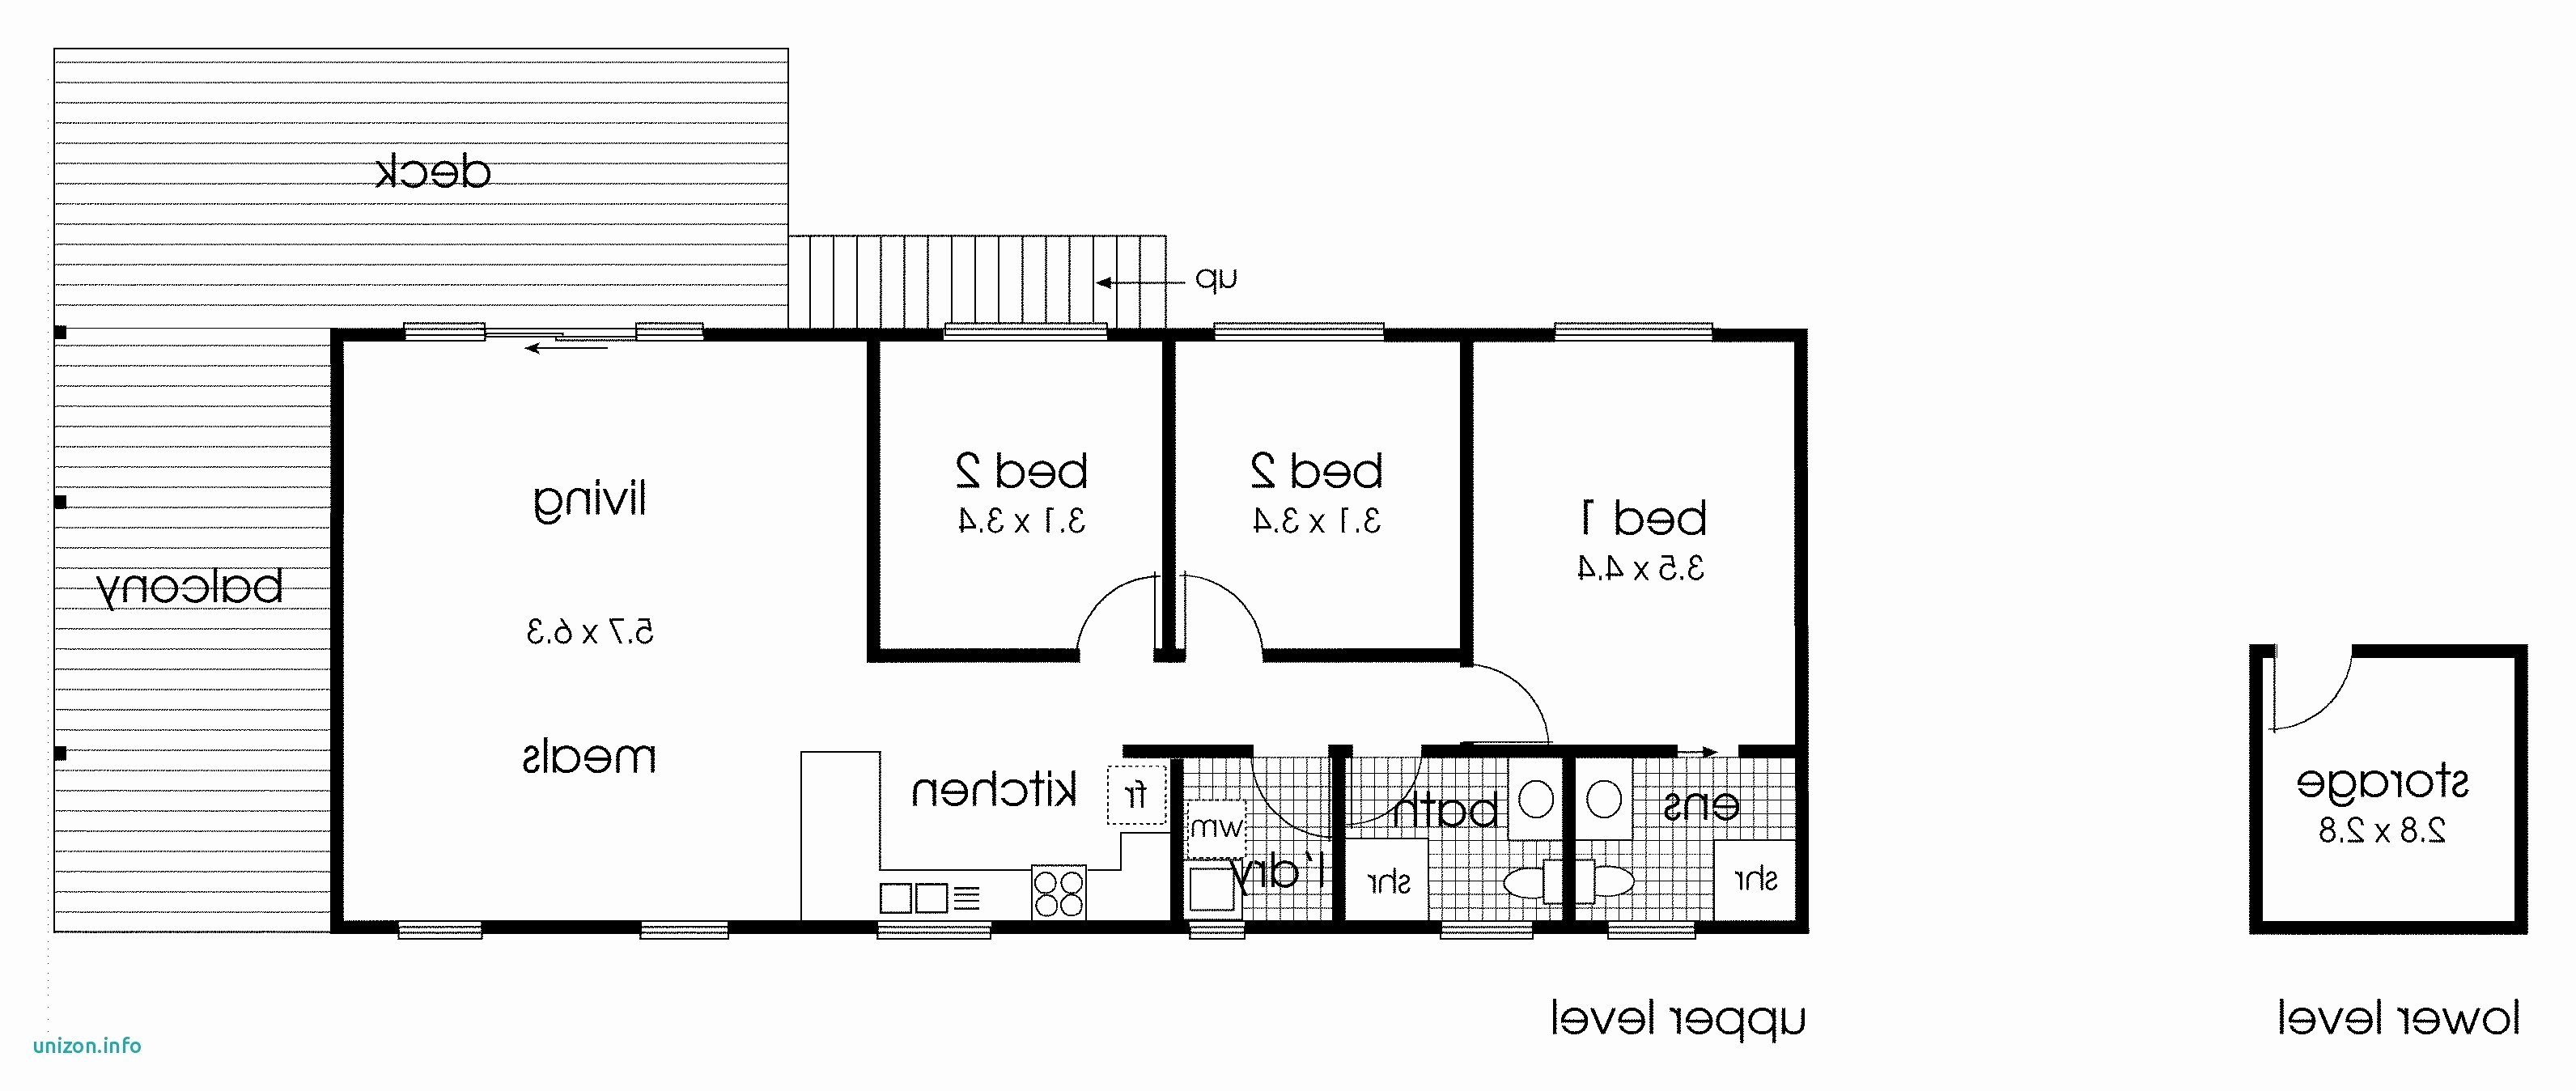 Visio Floor Plan Template Elegant Visio Floor Plan Templates Carpet Vidalondon